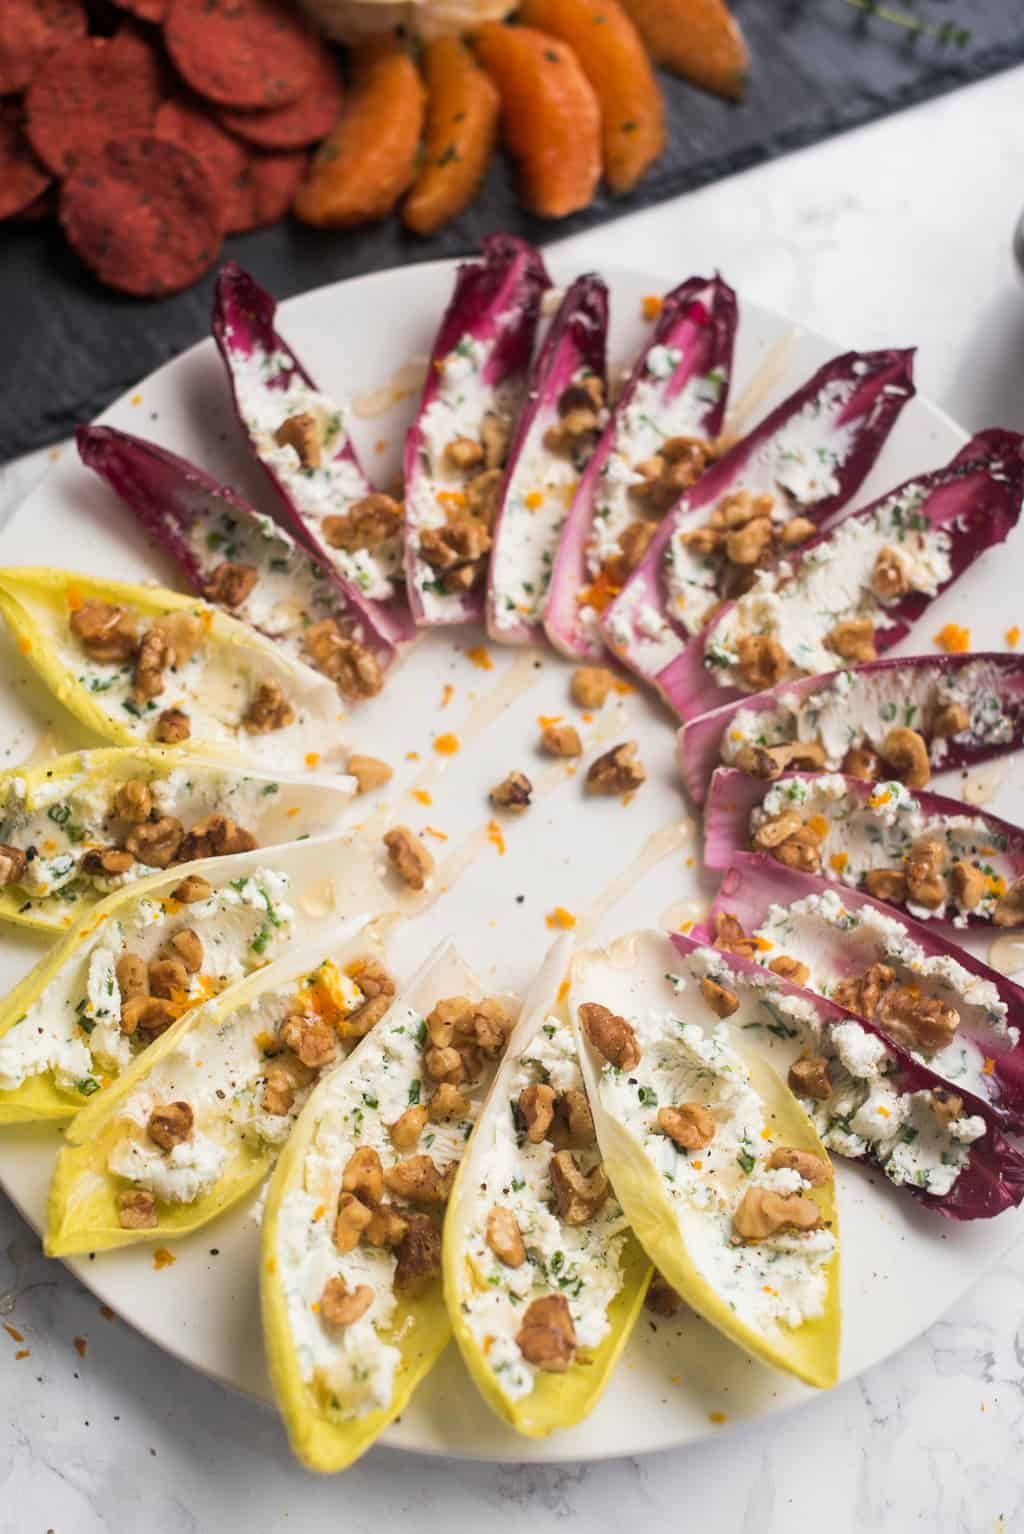 Stuffed Endive Recipes Food Network